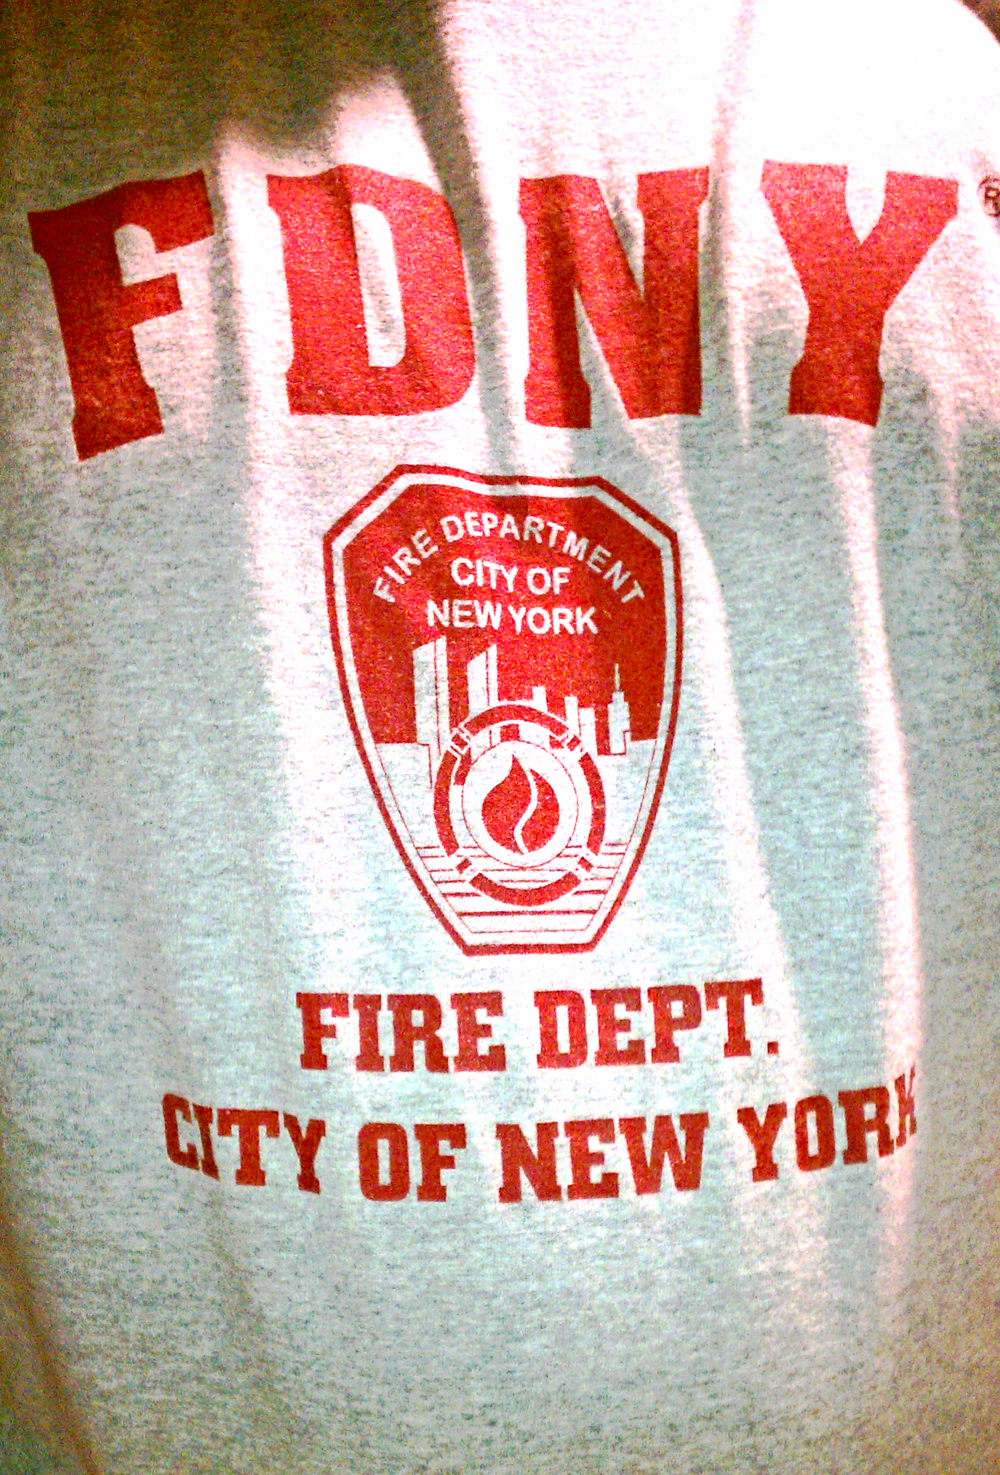 One of the shirts I bought during my NYC trip. I wear it proudly on September 11.